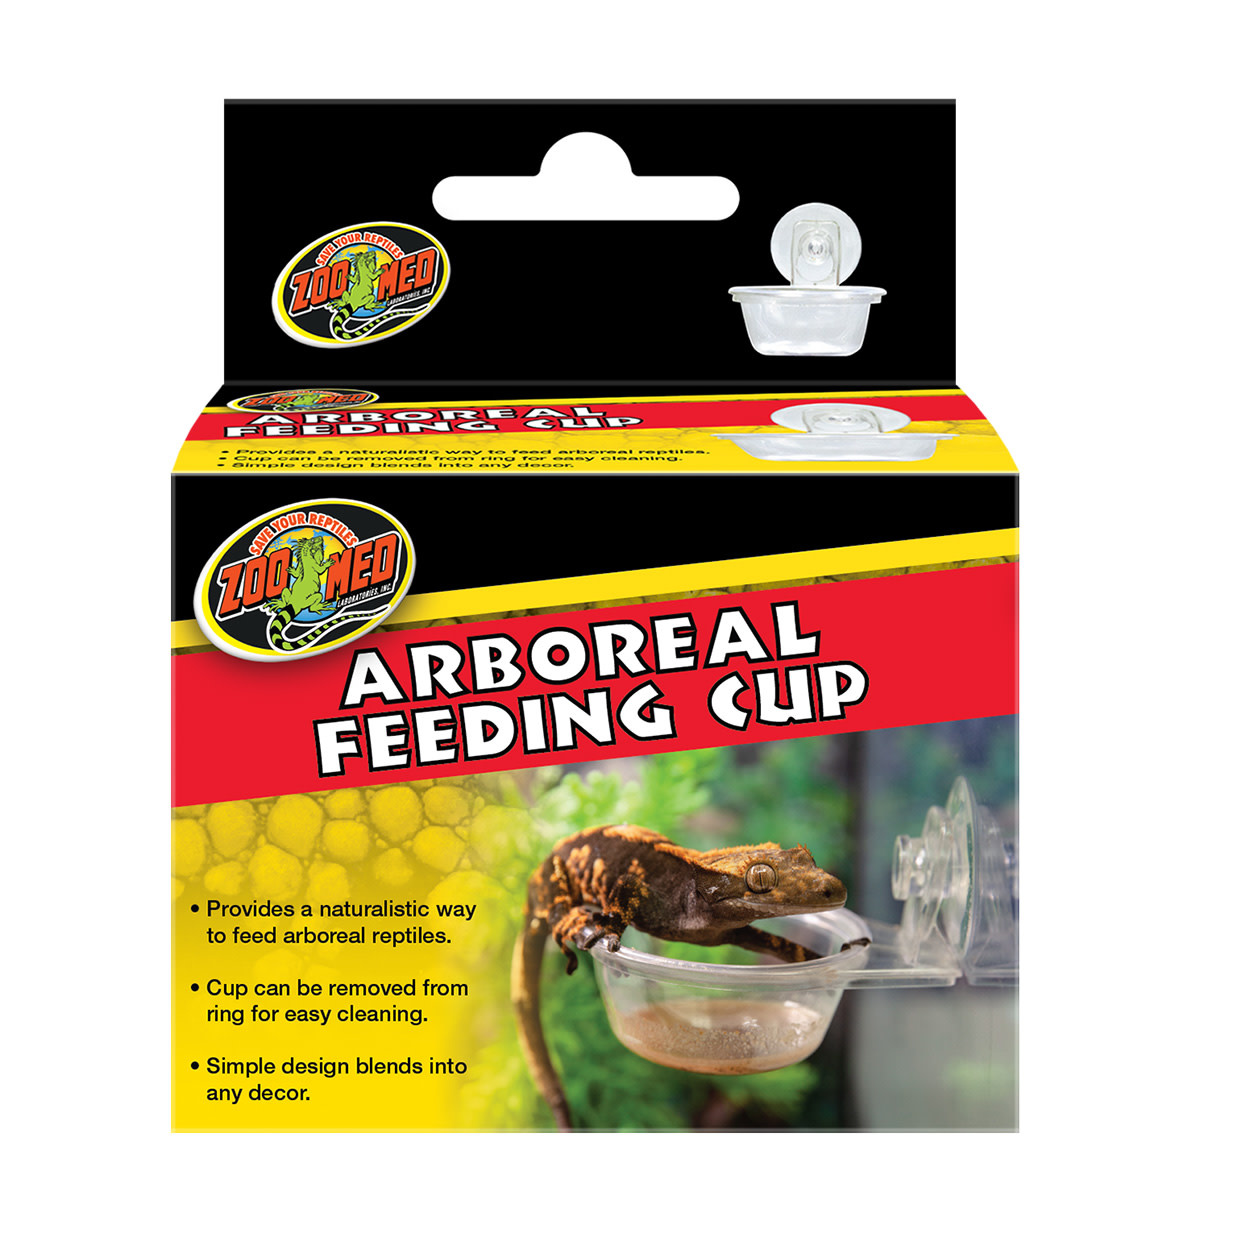 Zoomed Plat d'alimentation arboricole - Arboreal Feeding Cup